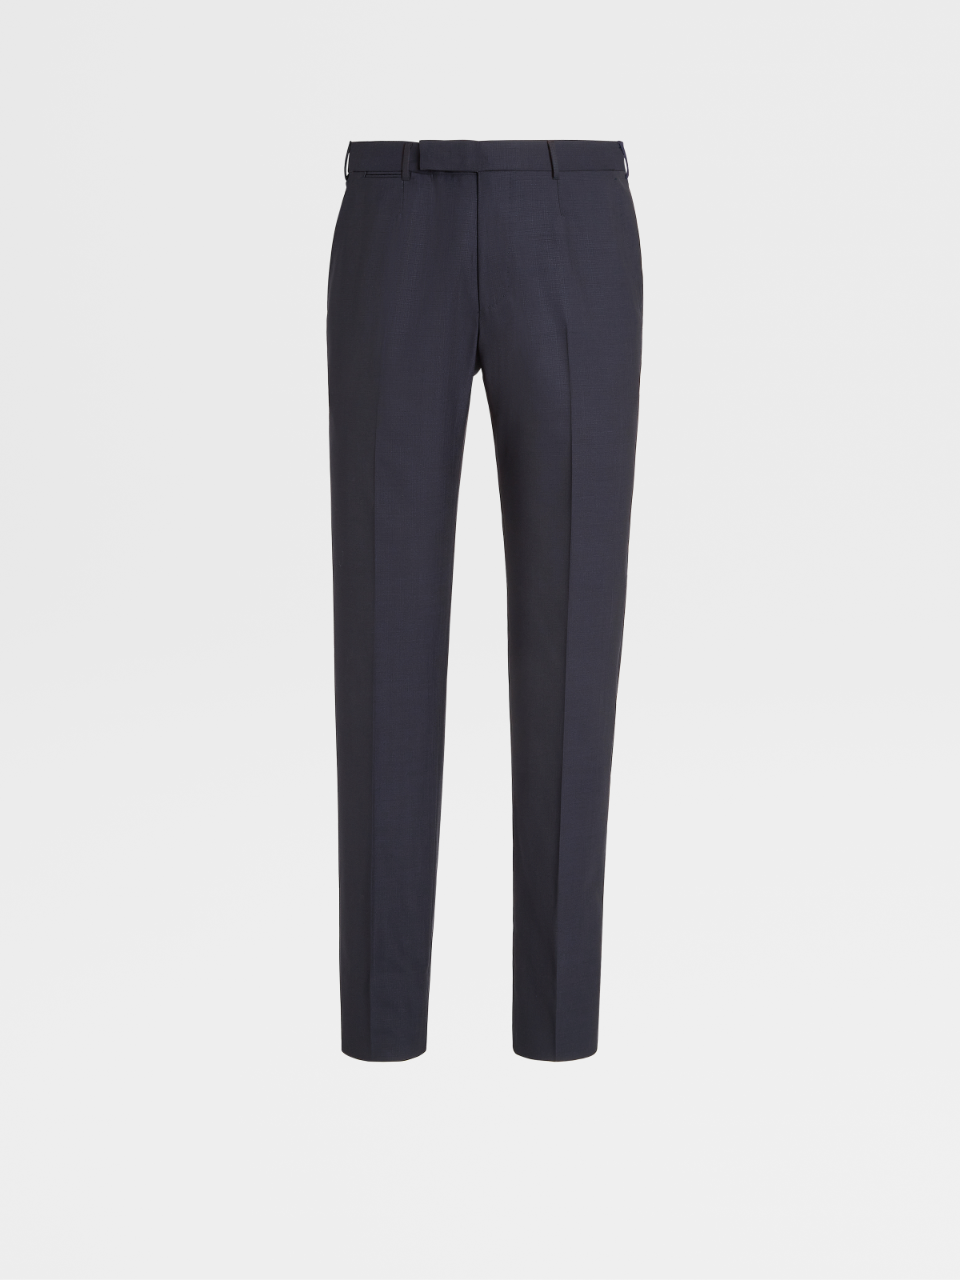 High Performance Wool Pants